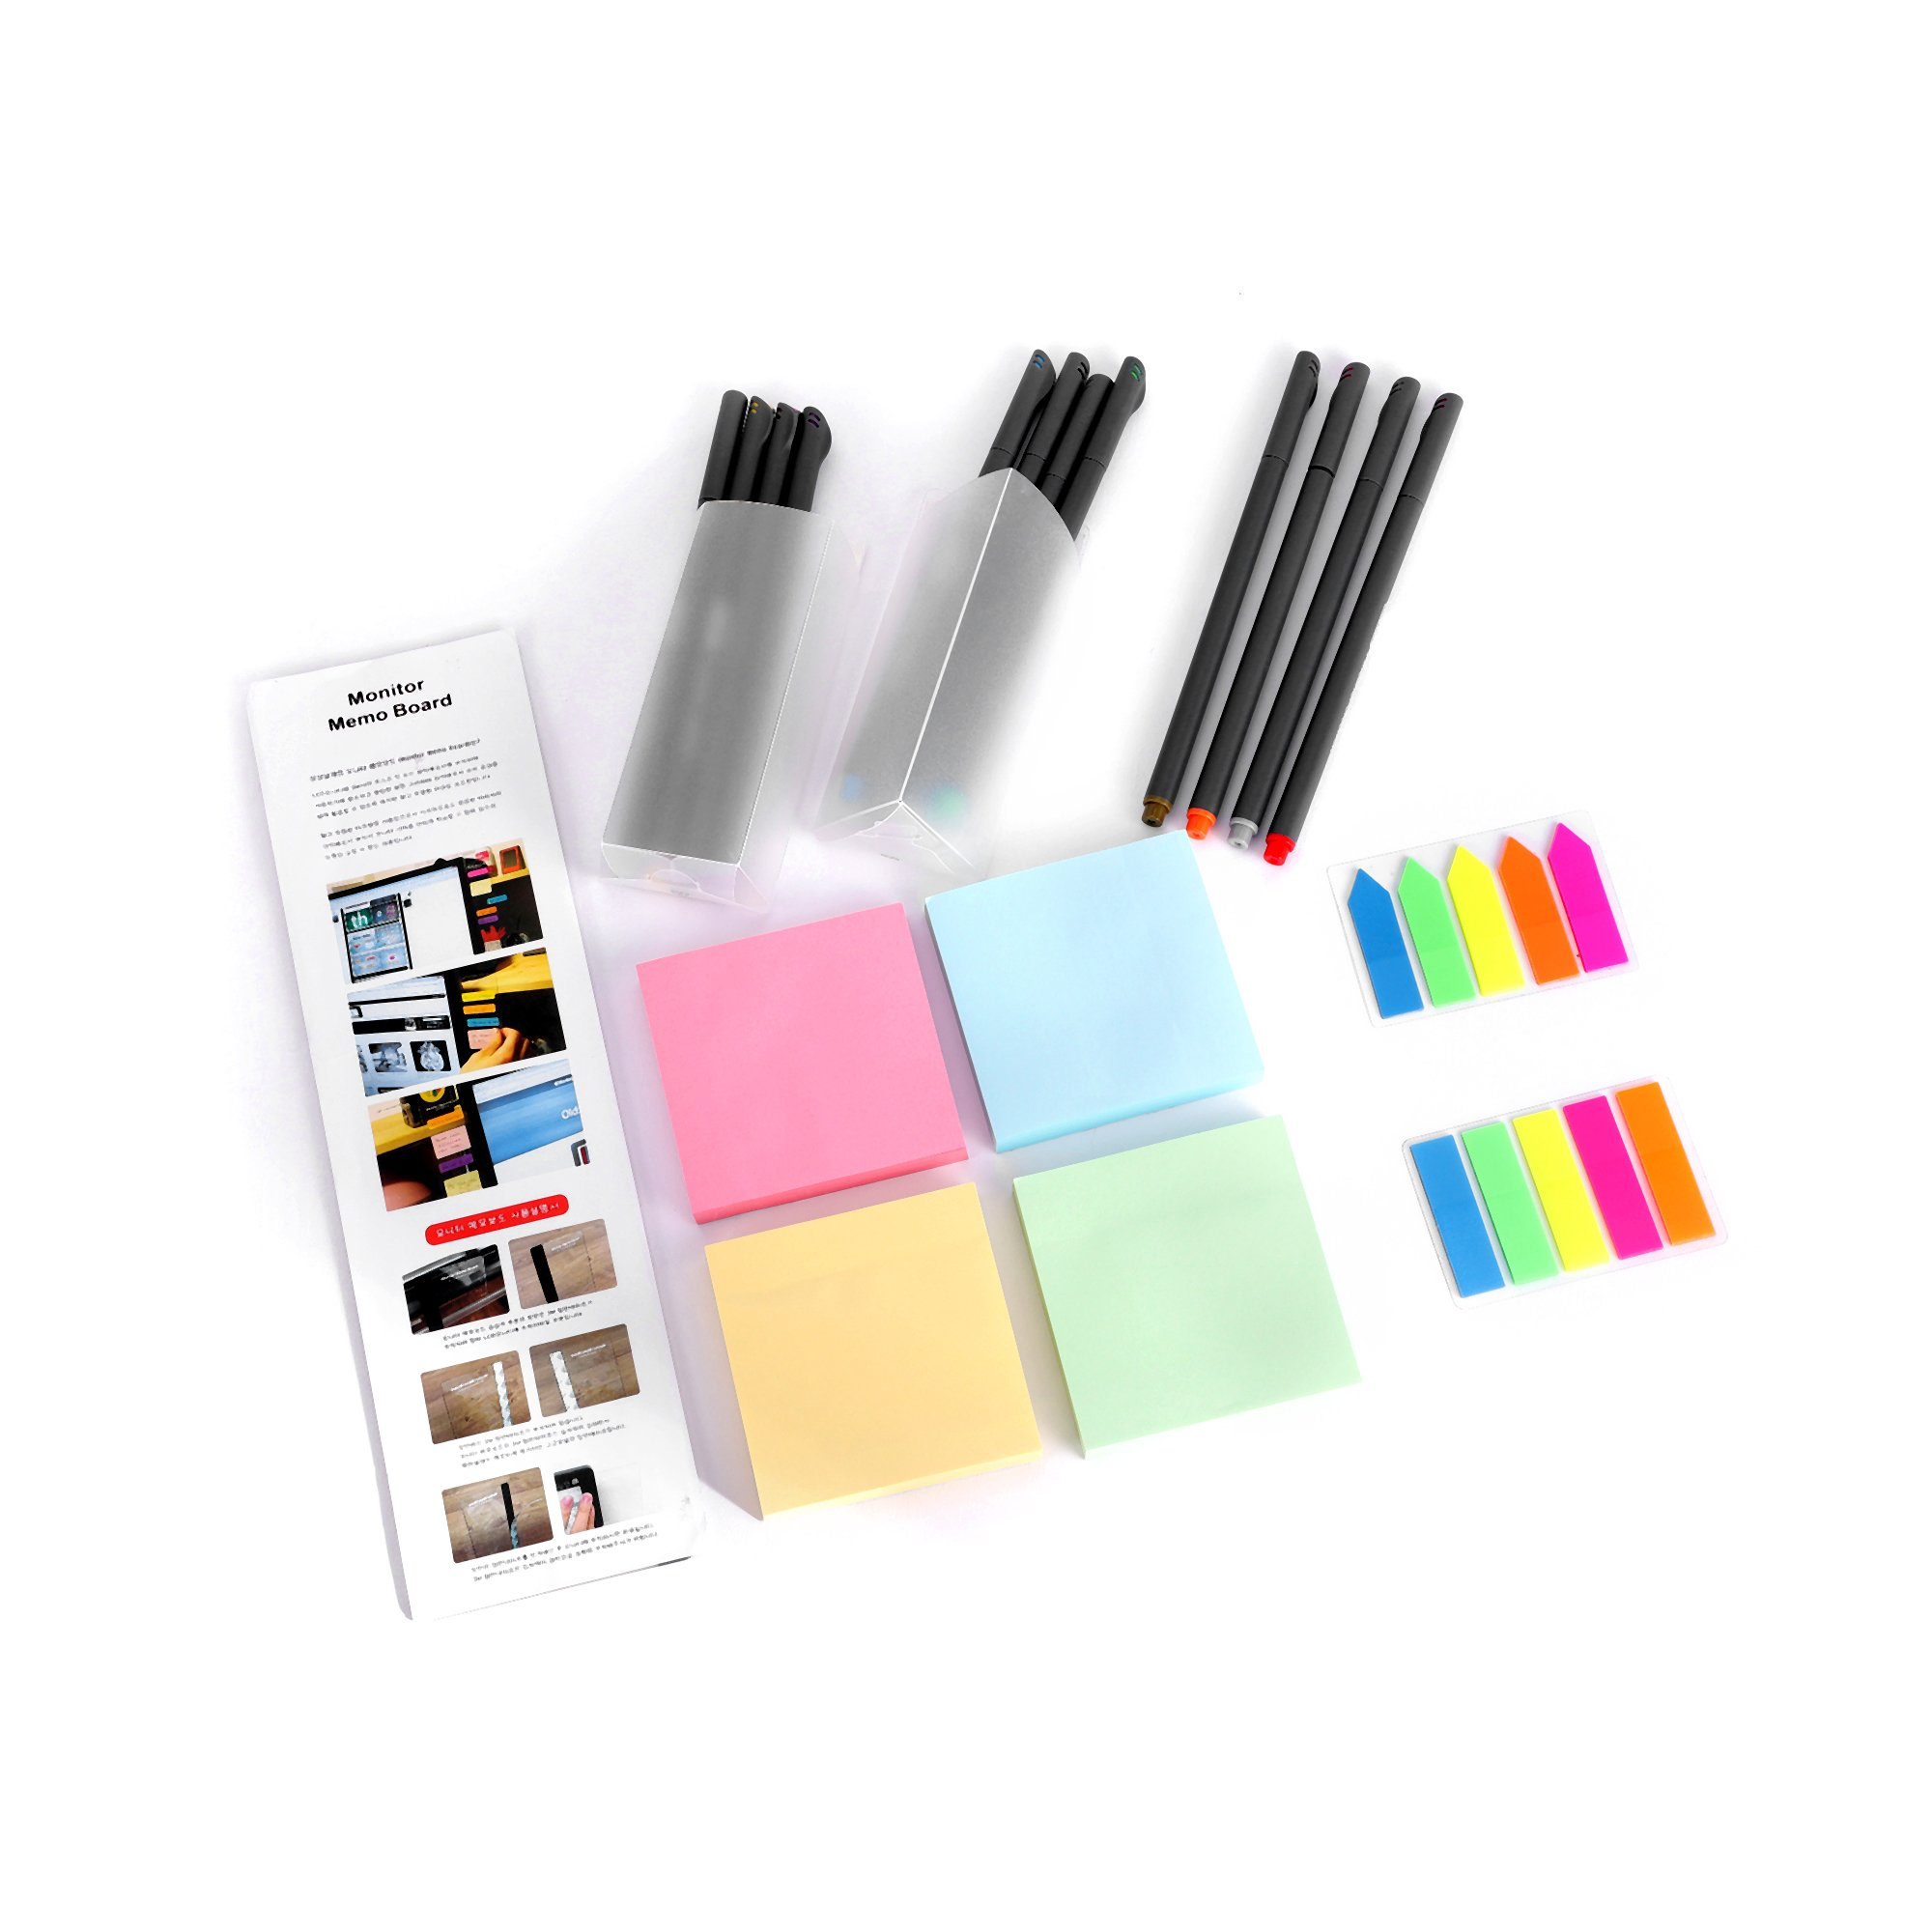 JCT Desktop Supplies Accessories Set Computer Monitors Message Board with Assorted 0.38mm Fineliner Pen and Pencil Holder Sticky Notes Flag Tabs Office Gift